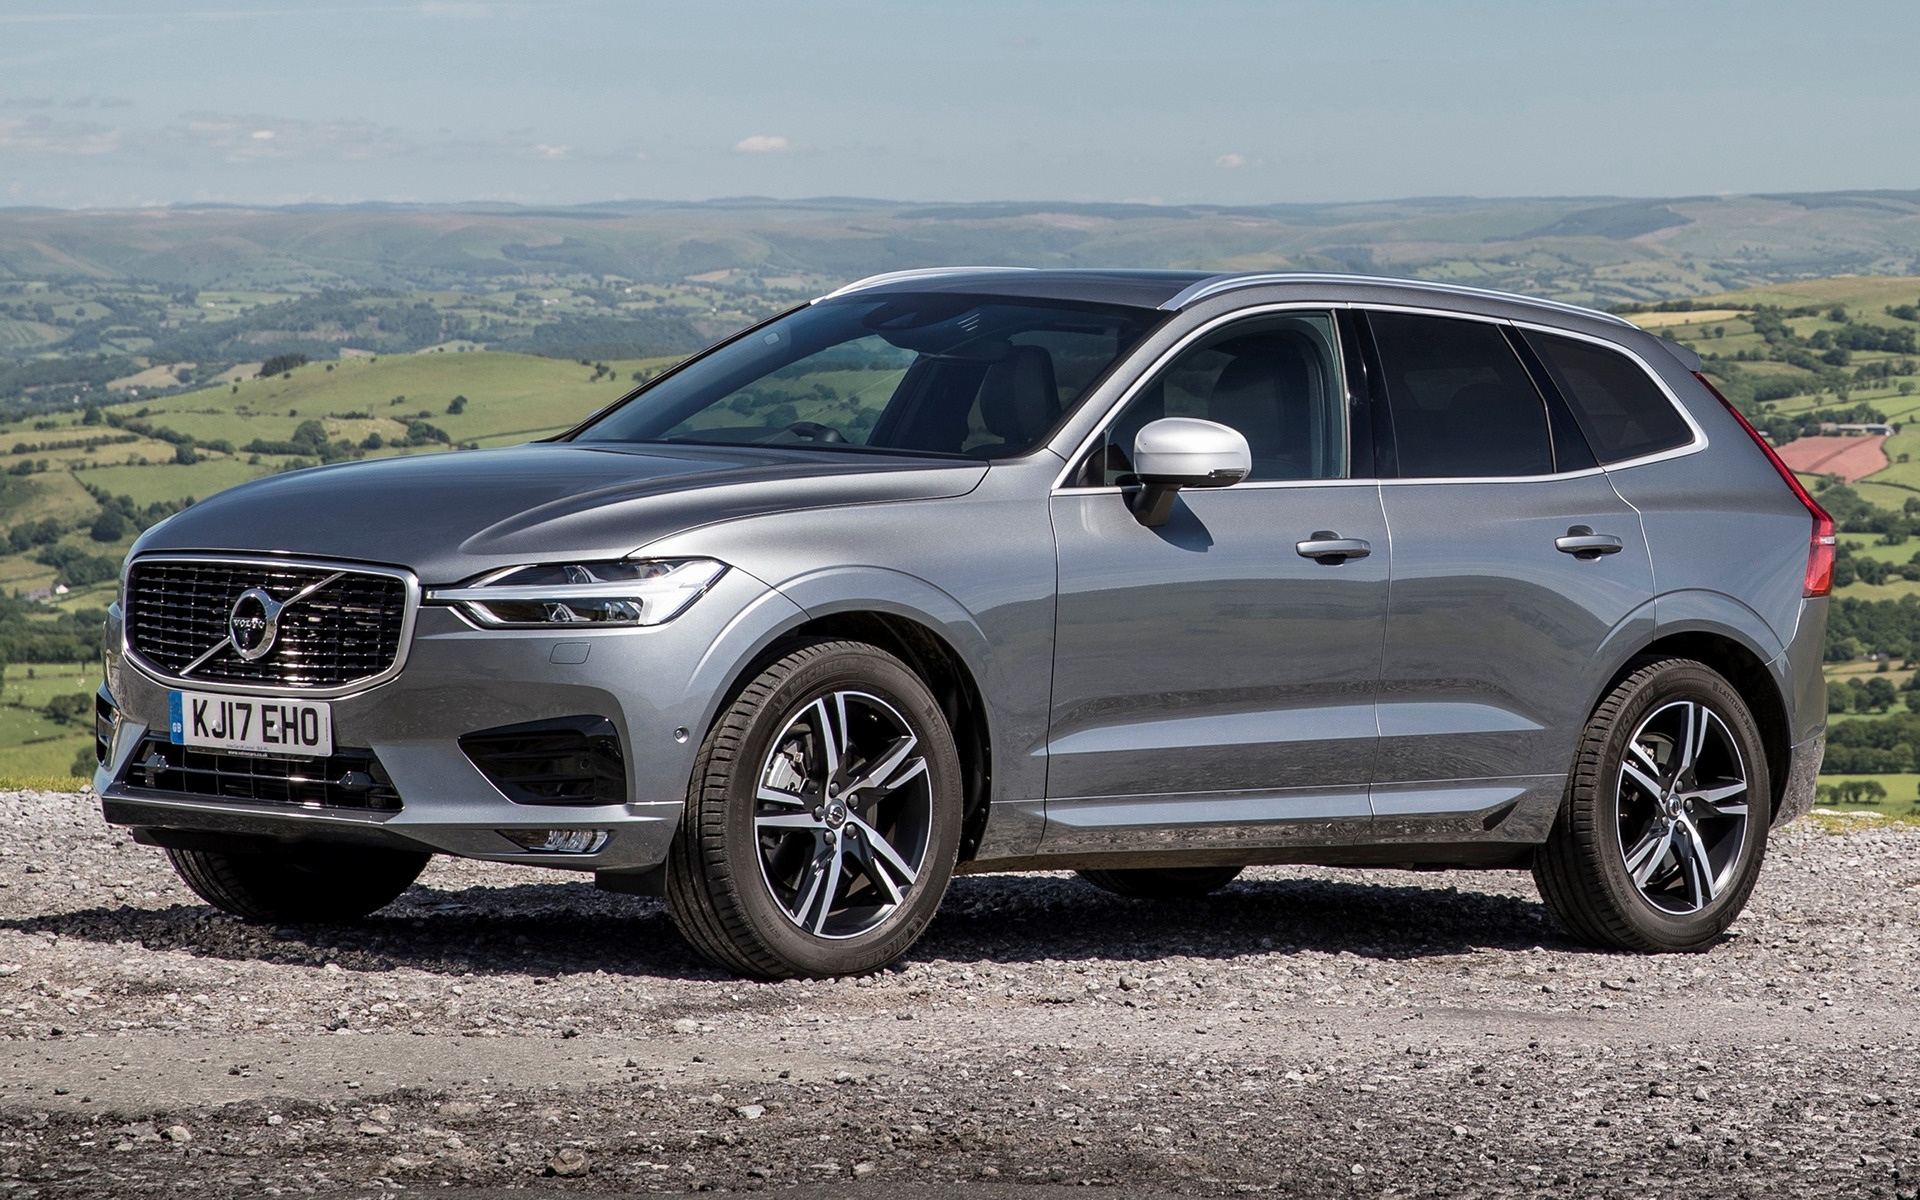 2017 Volvo XC60 R-Design (UK) - Wallpapers and HD Images ...